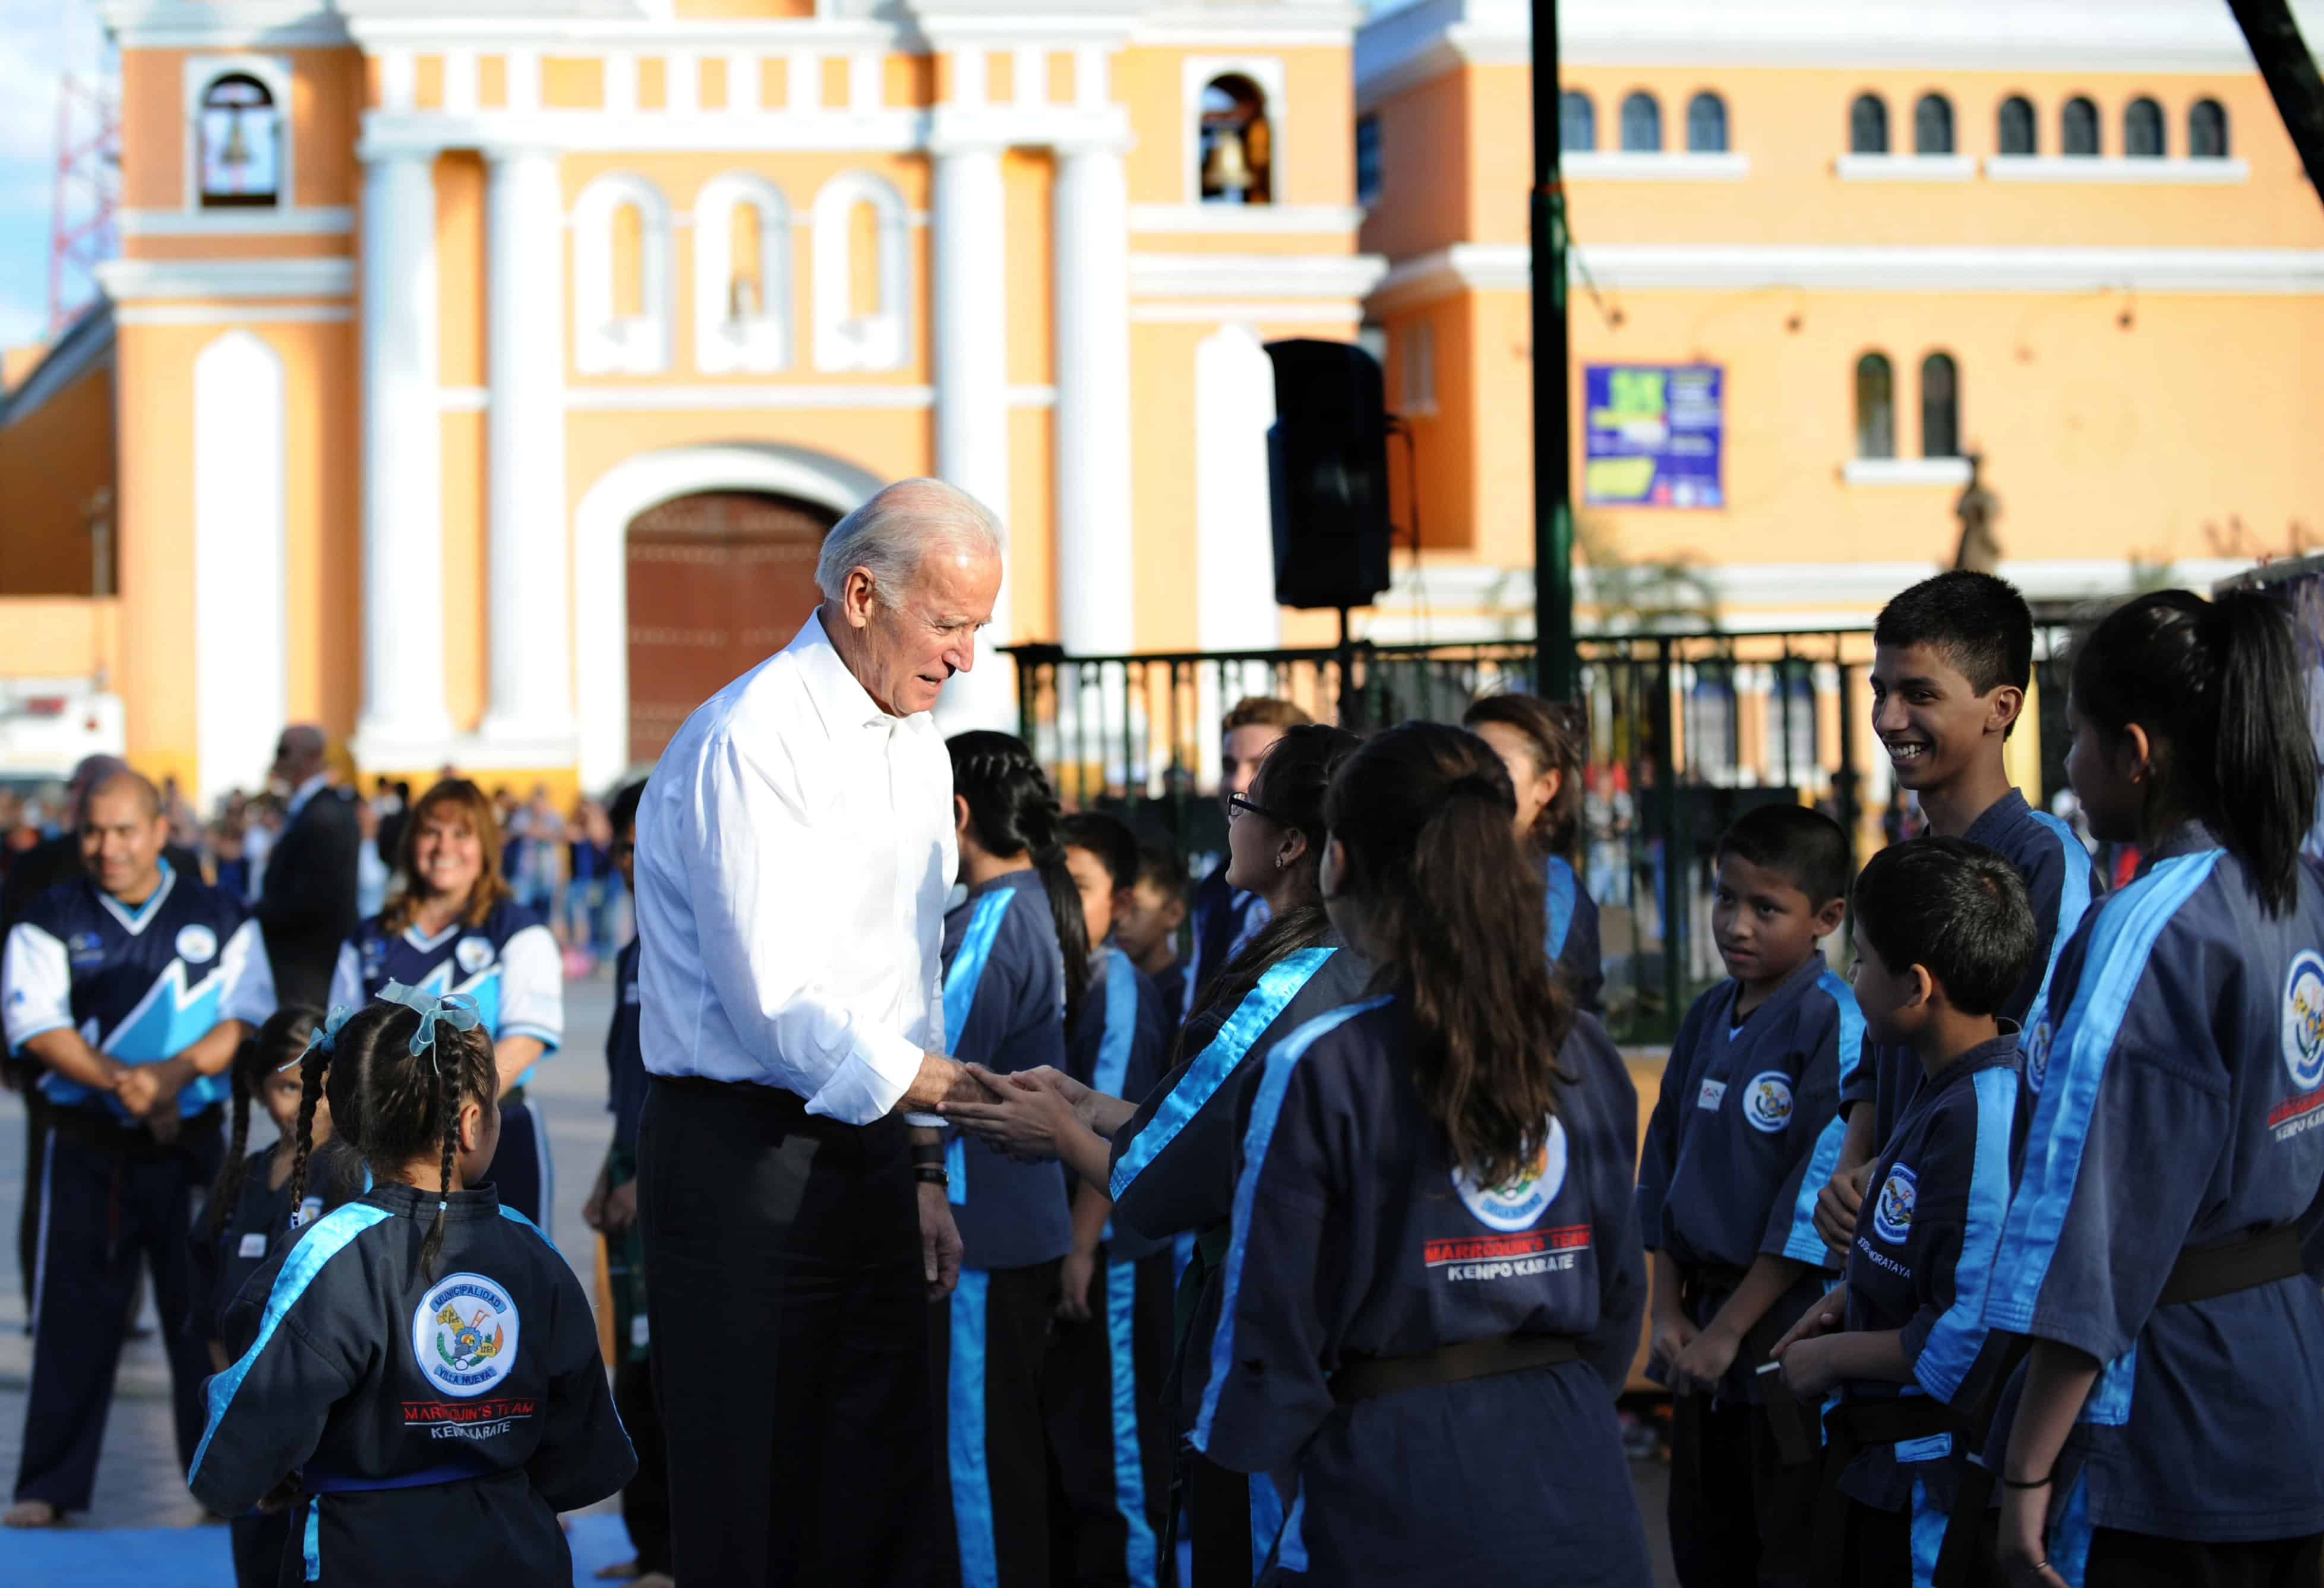 U.S. Vice President Joe Biden greets students during a visit to Guatemala in March.